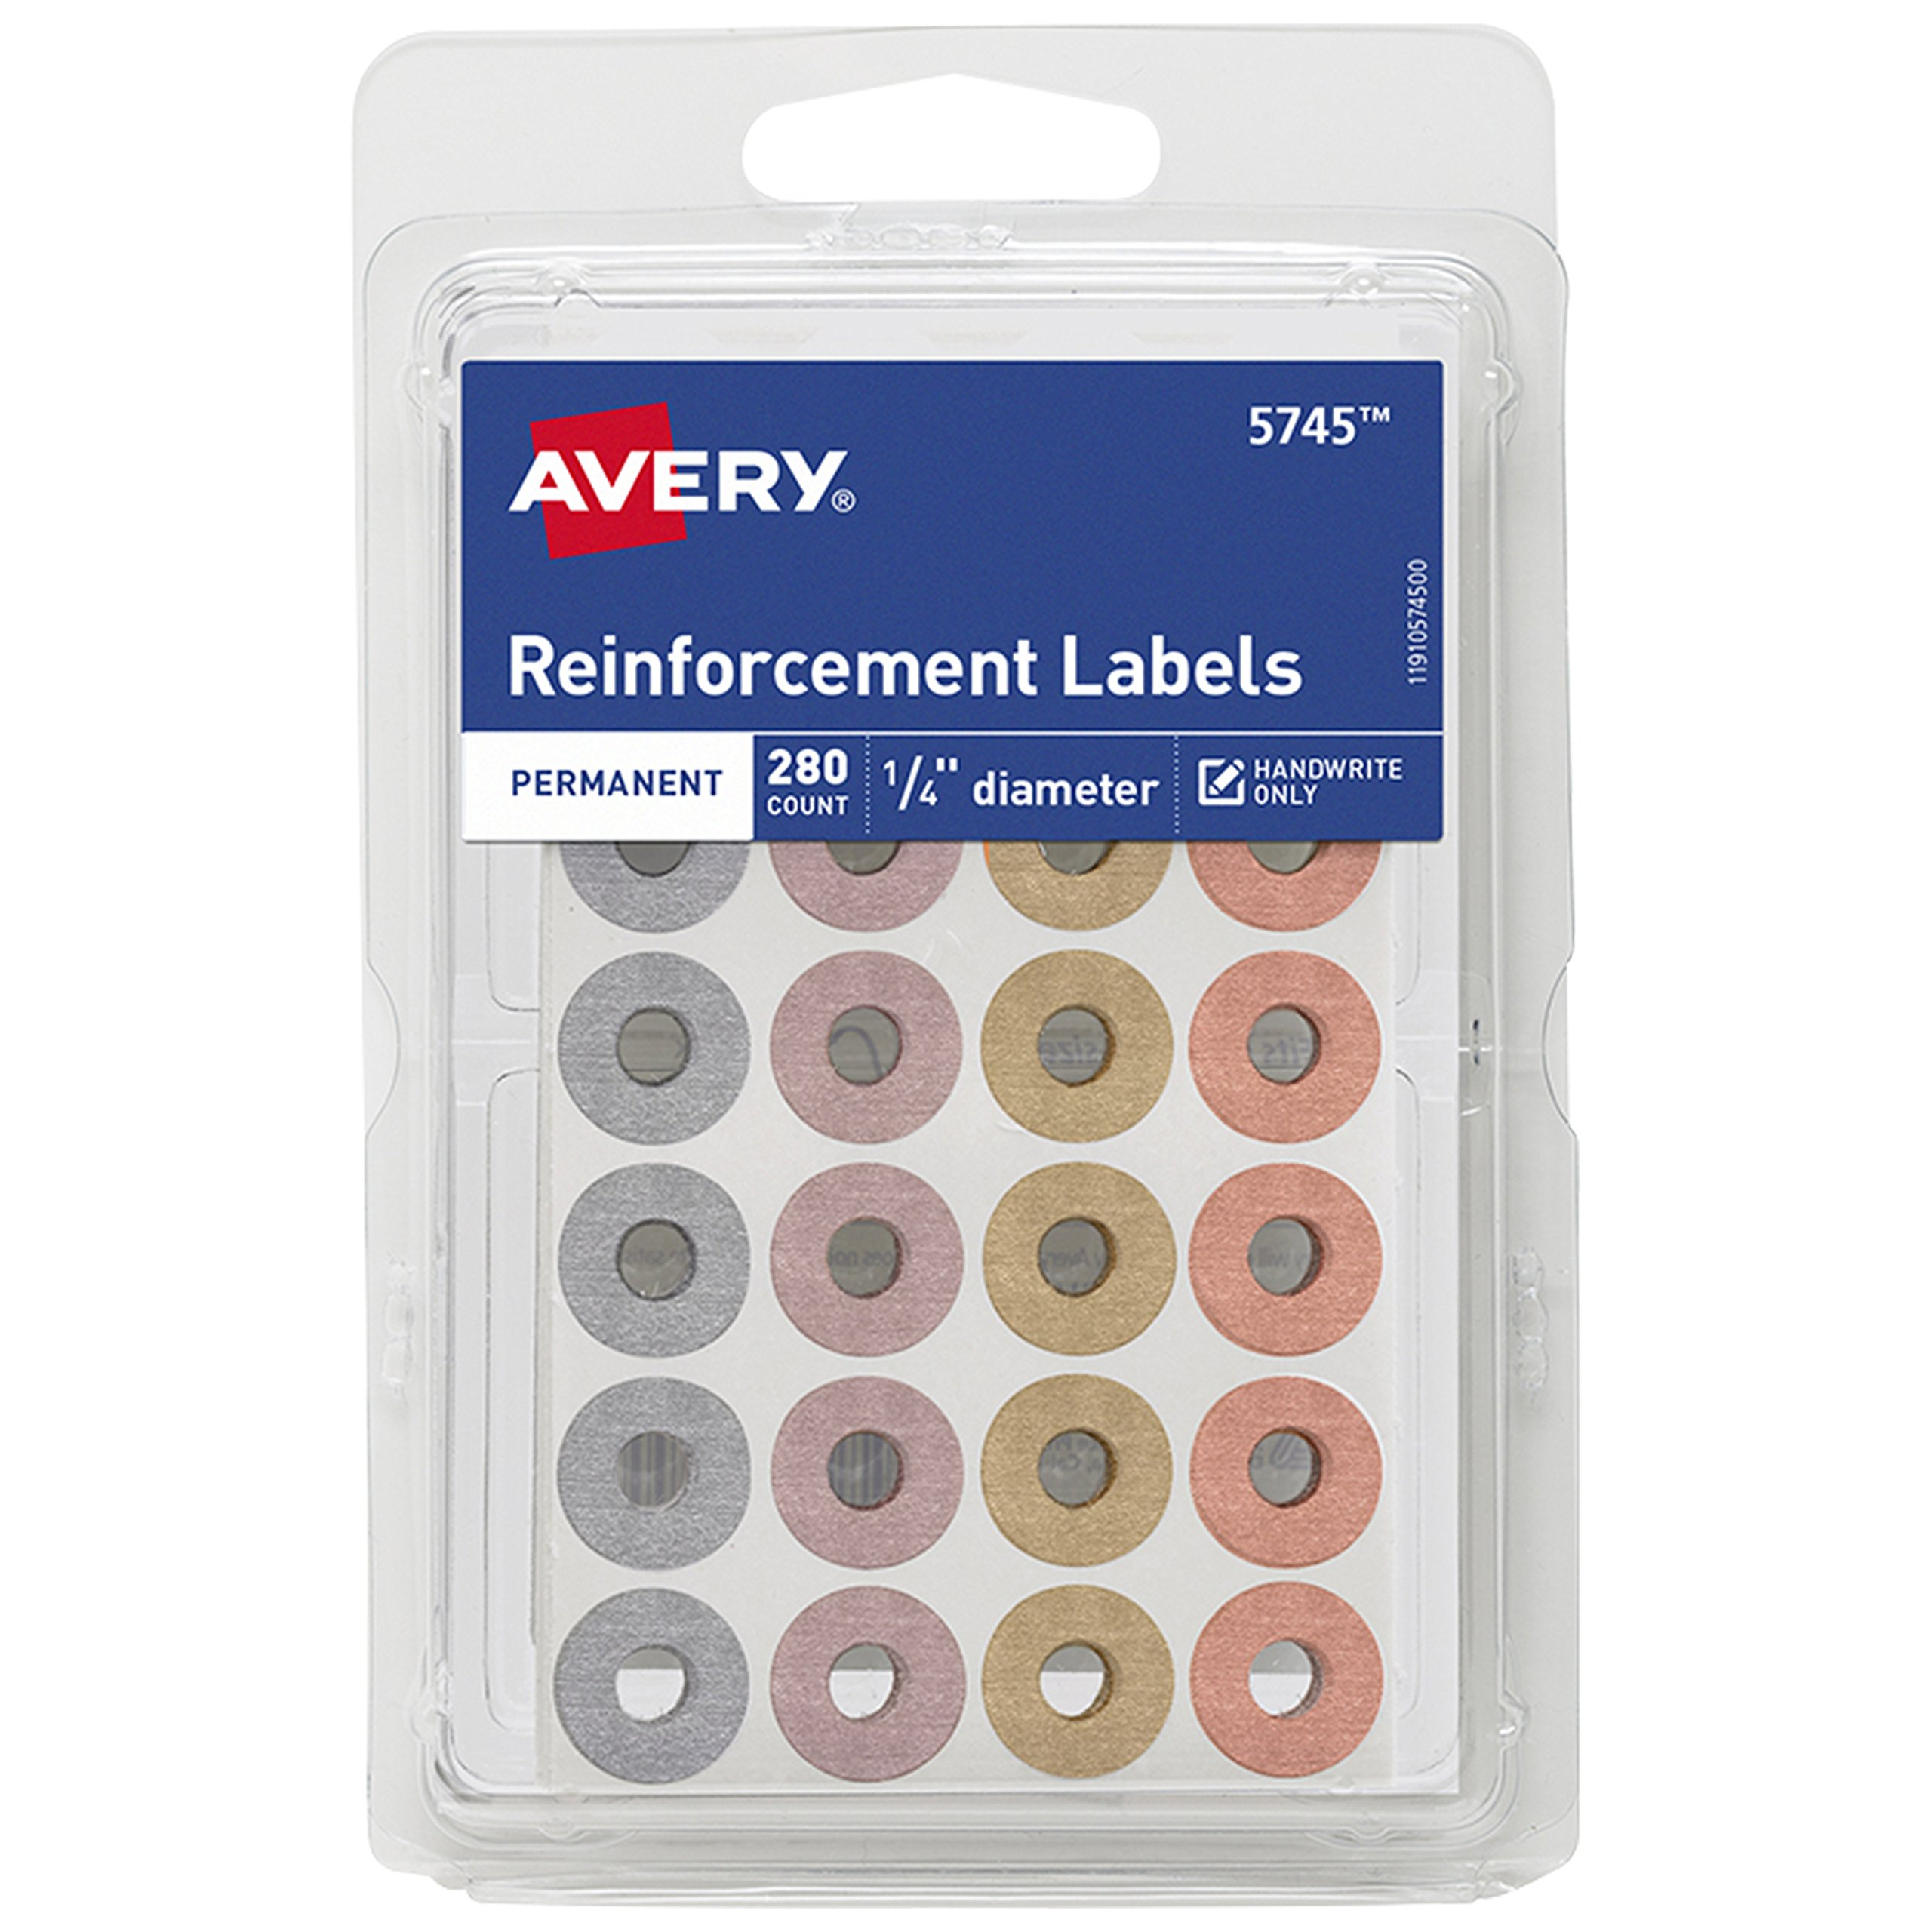 Avery Fashion Reinforcement Labels, Assorted Metallic Colors, 1/4'' Diameter, Pack of 280 (5745)